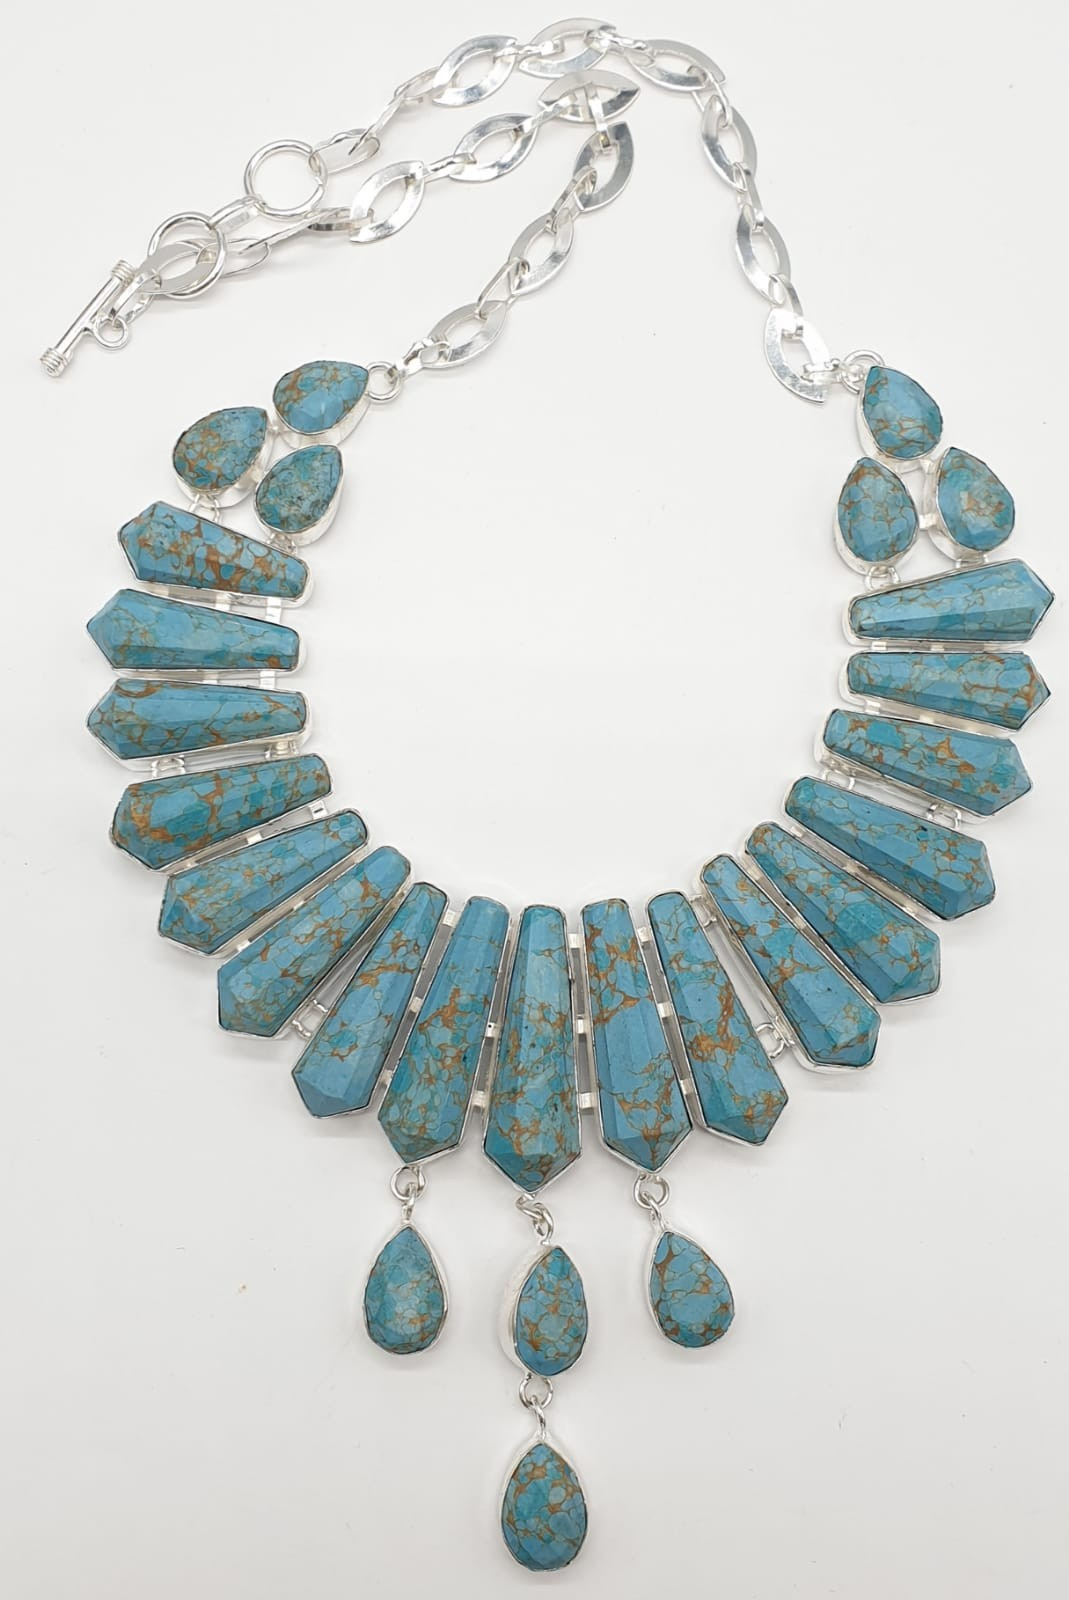 A Pharaonic style necklace and earrings set with light brown-gold veined turquoise obelisks and - Image 23 of 24